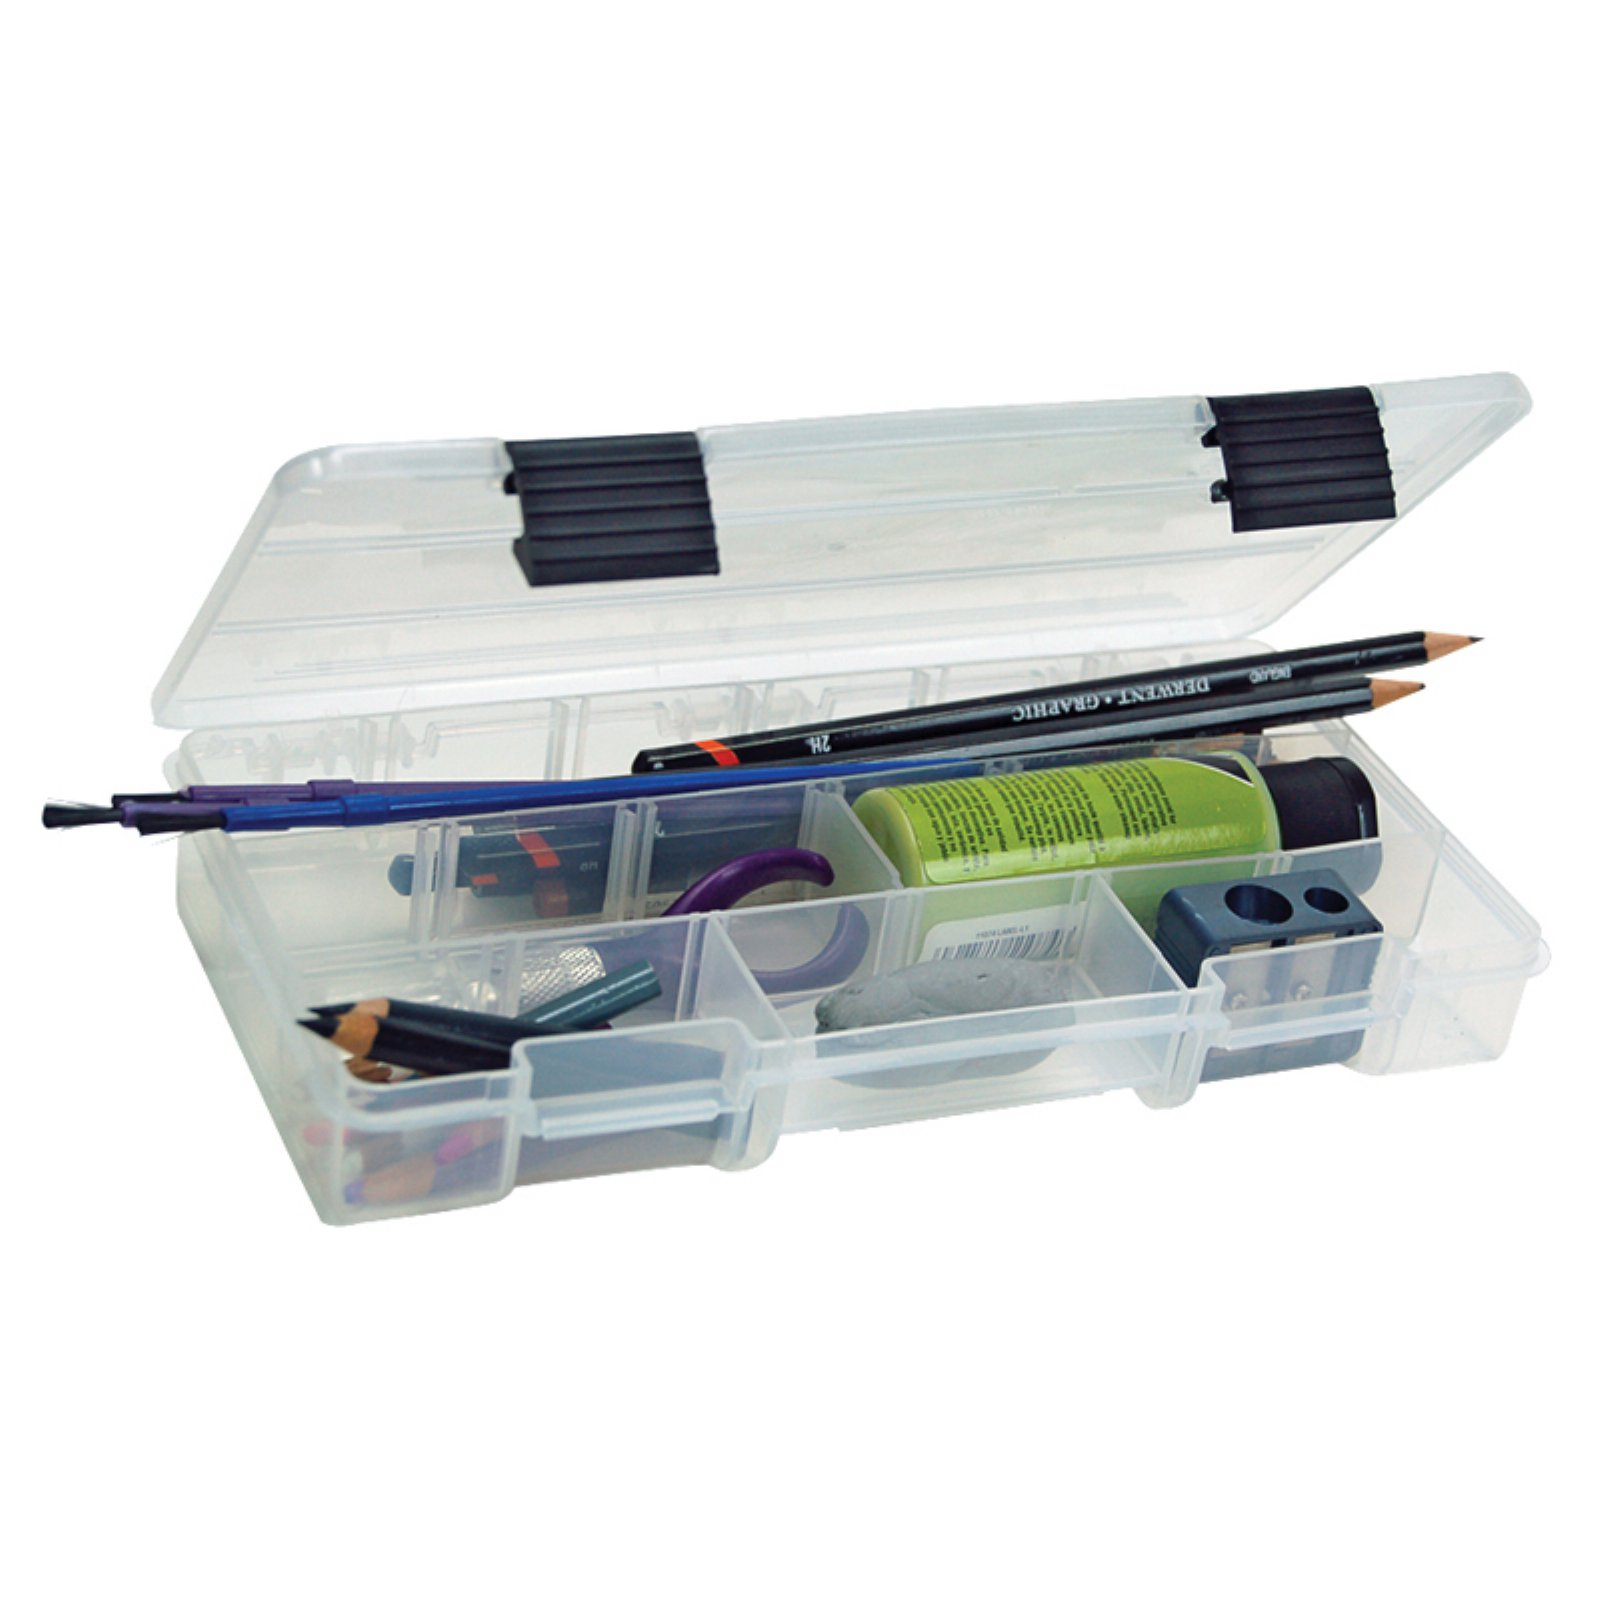 Creative Options Pro Latch Utility Box, Clear with Black Latch